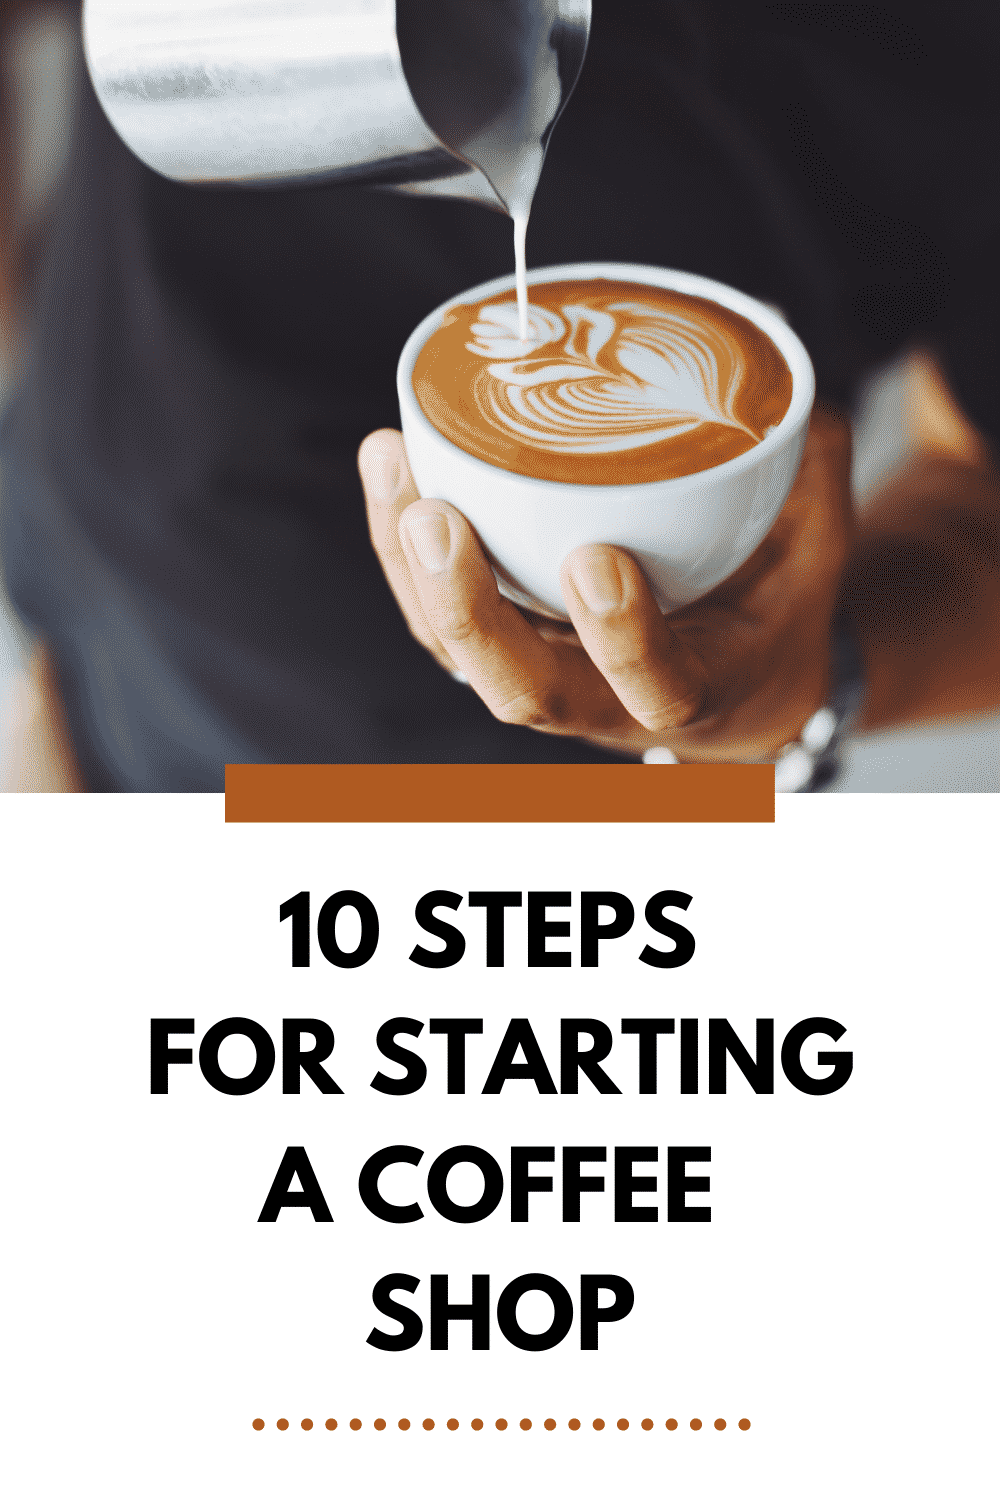 10 Steps for Starting a Coffee Shop